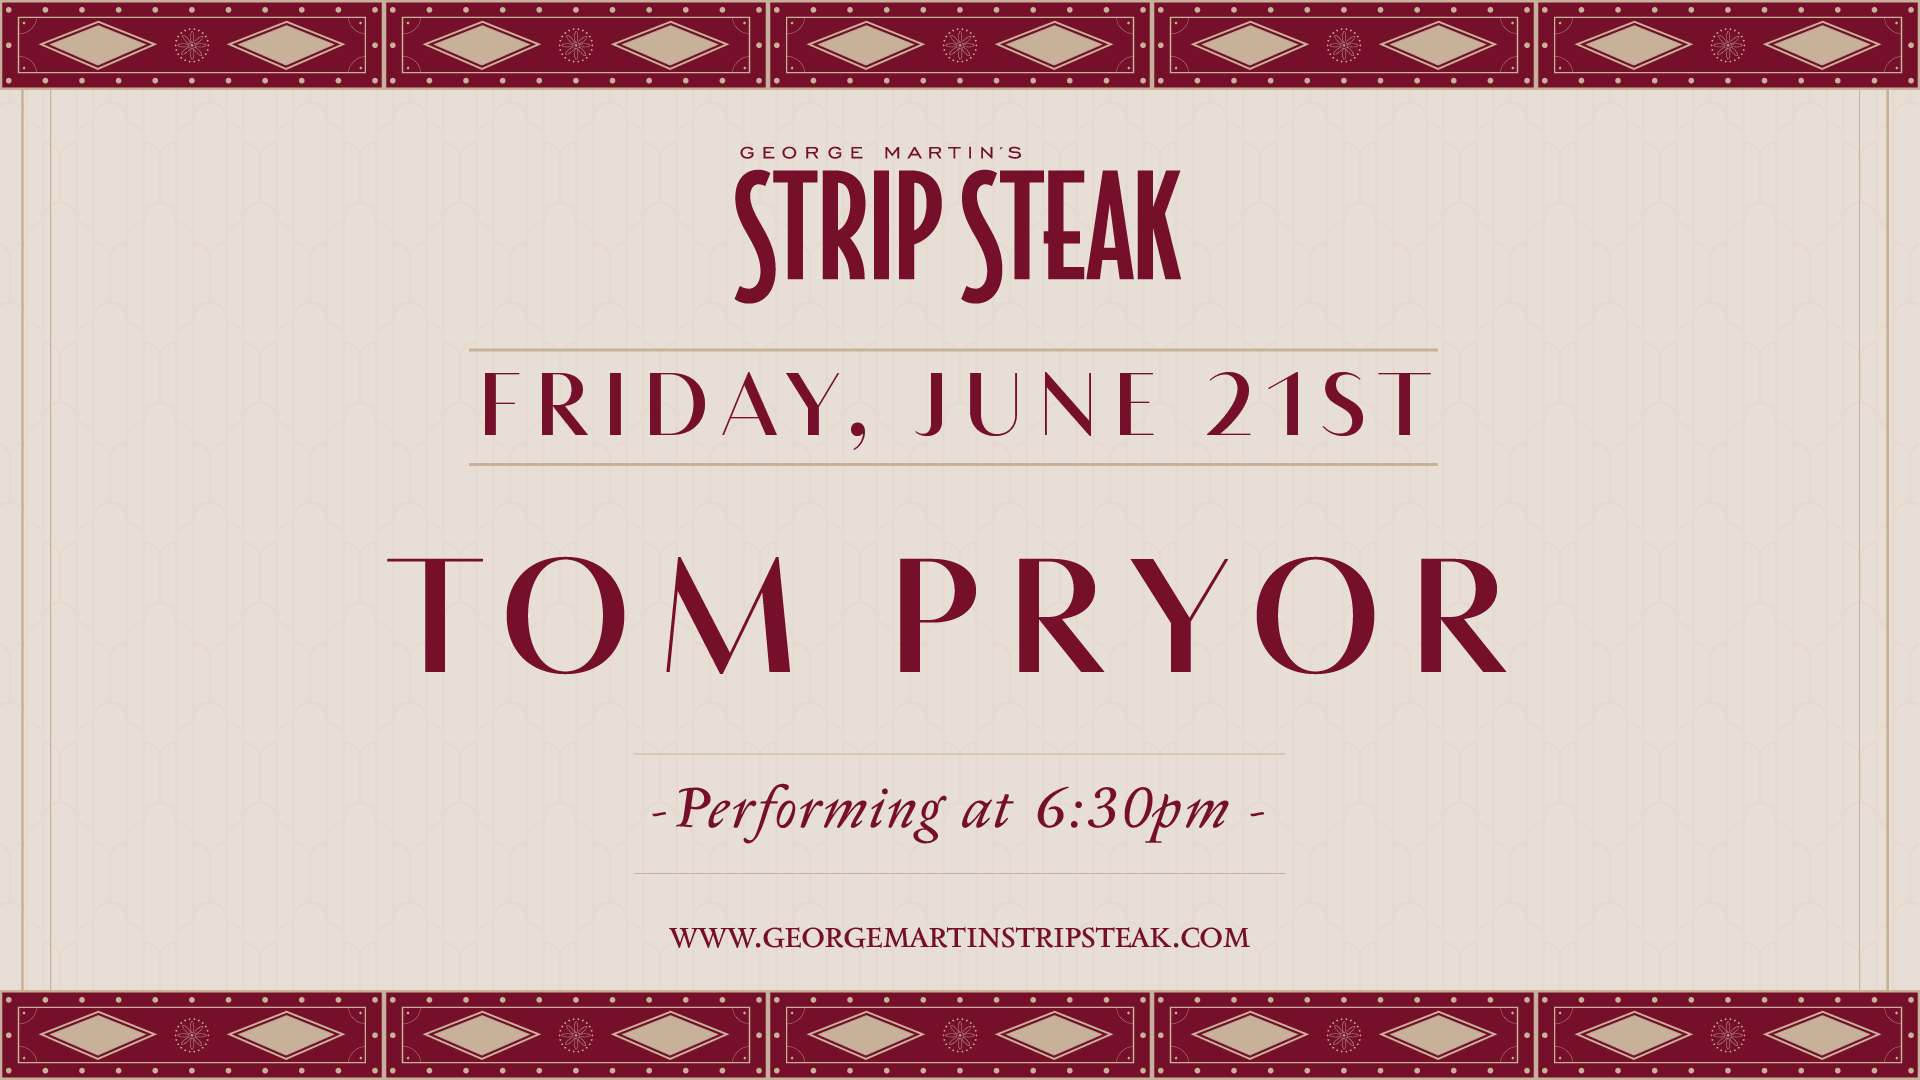 Live music with Tom Pyor on June 21st at 6:30pm.